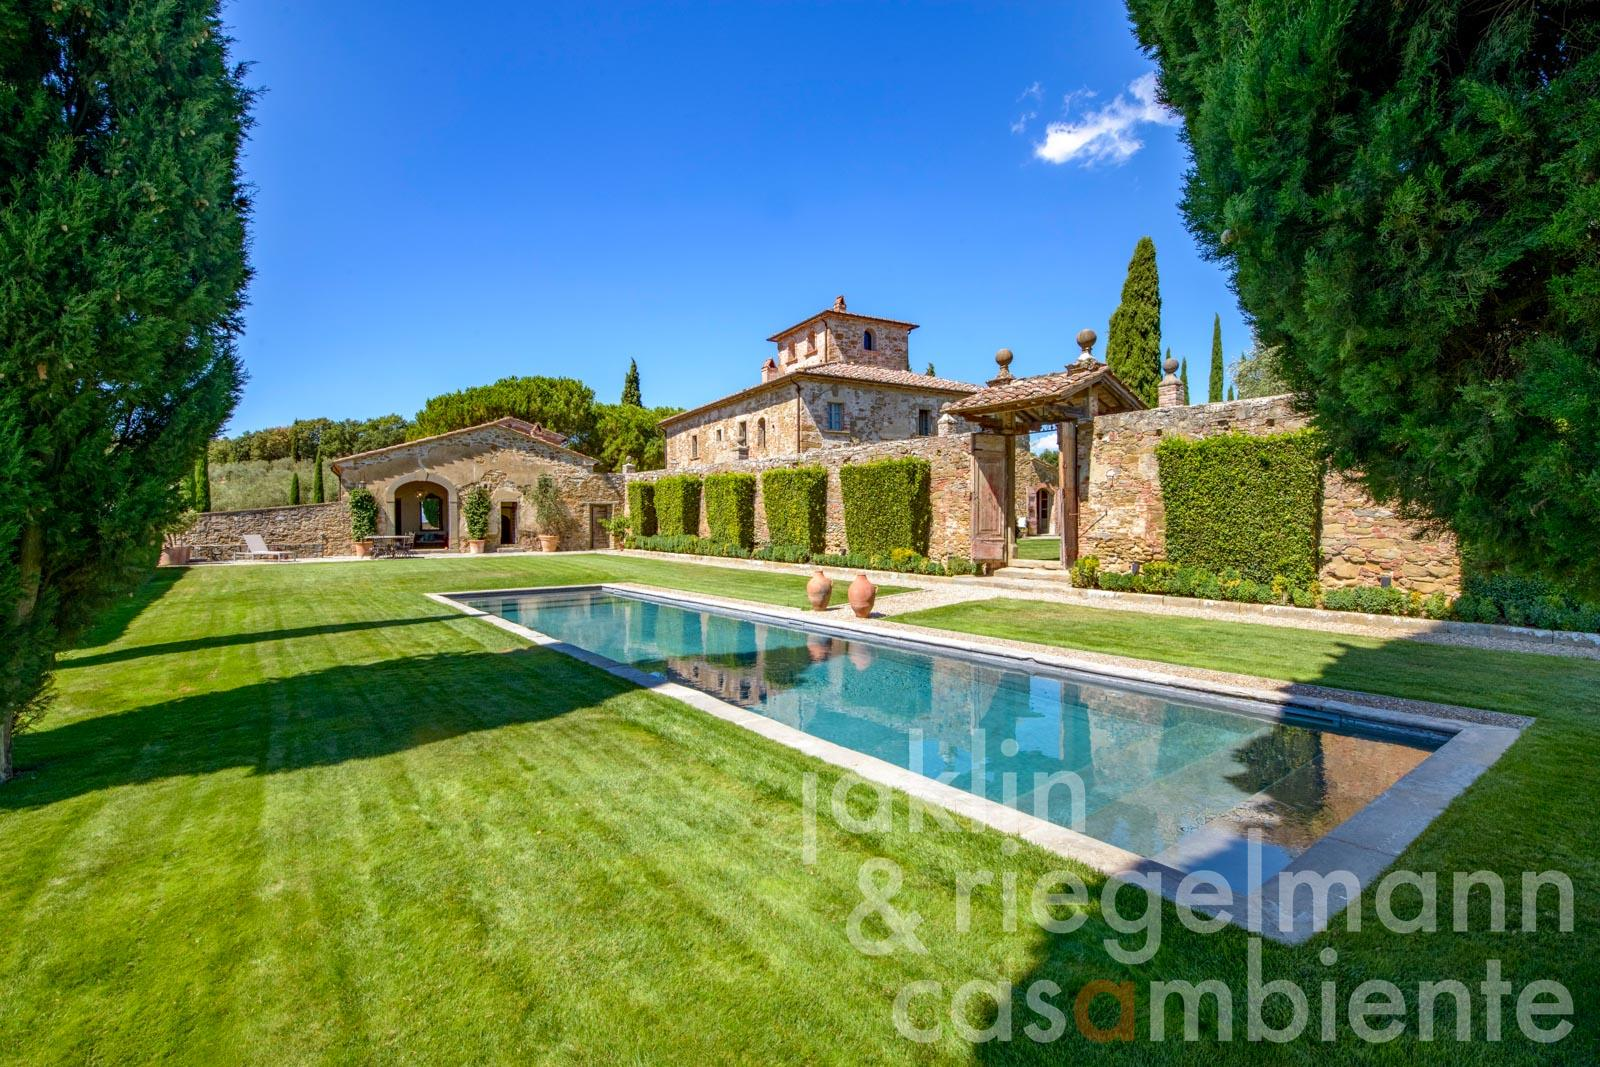 Villa Leopoldina with guest house, pool and approx. 5 ha of land at the edge of a medieval town